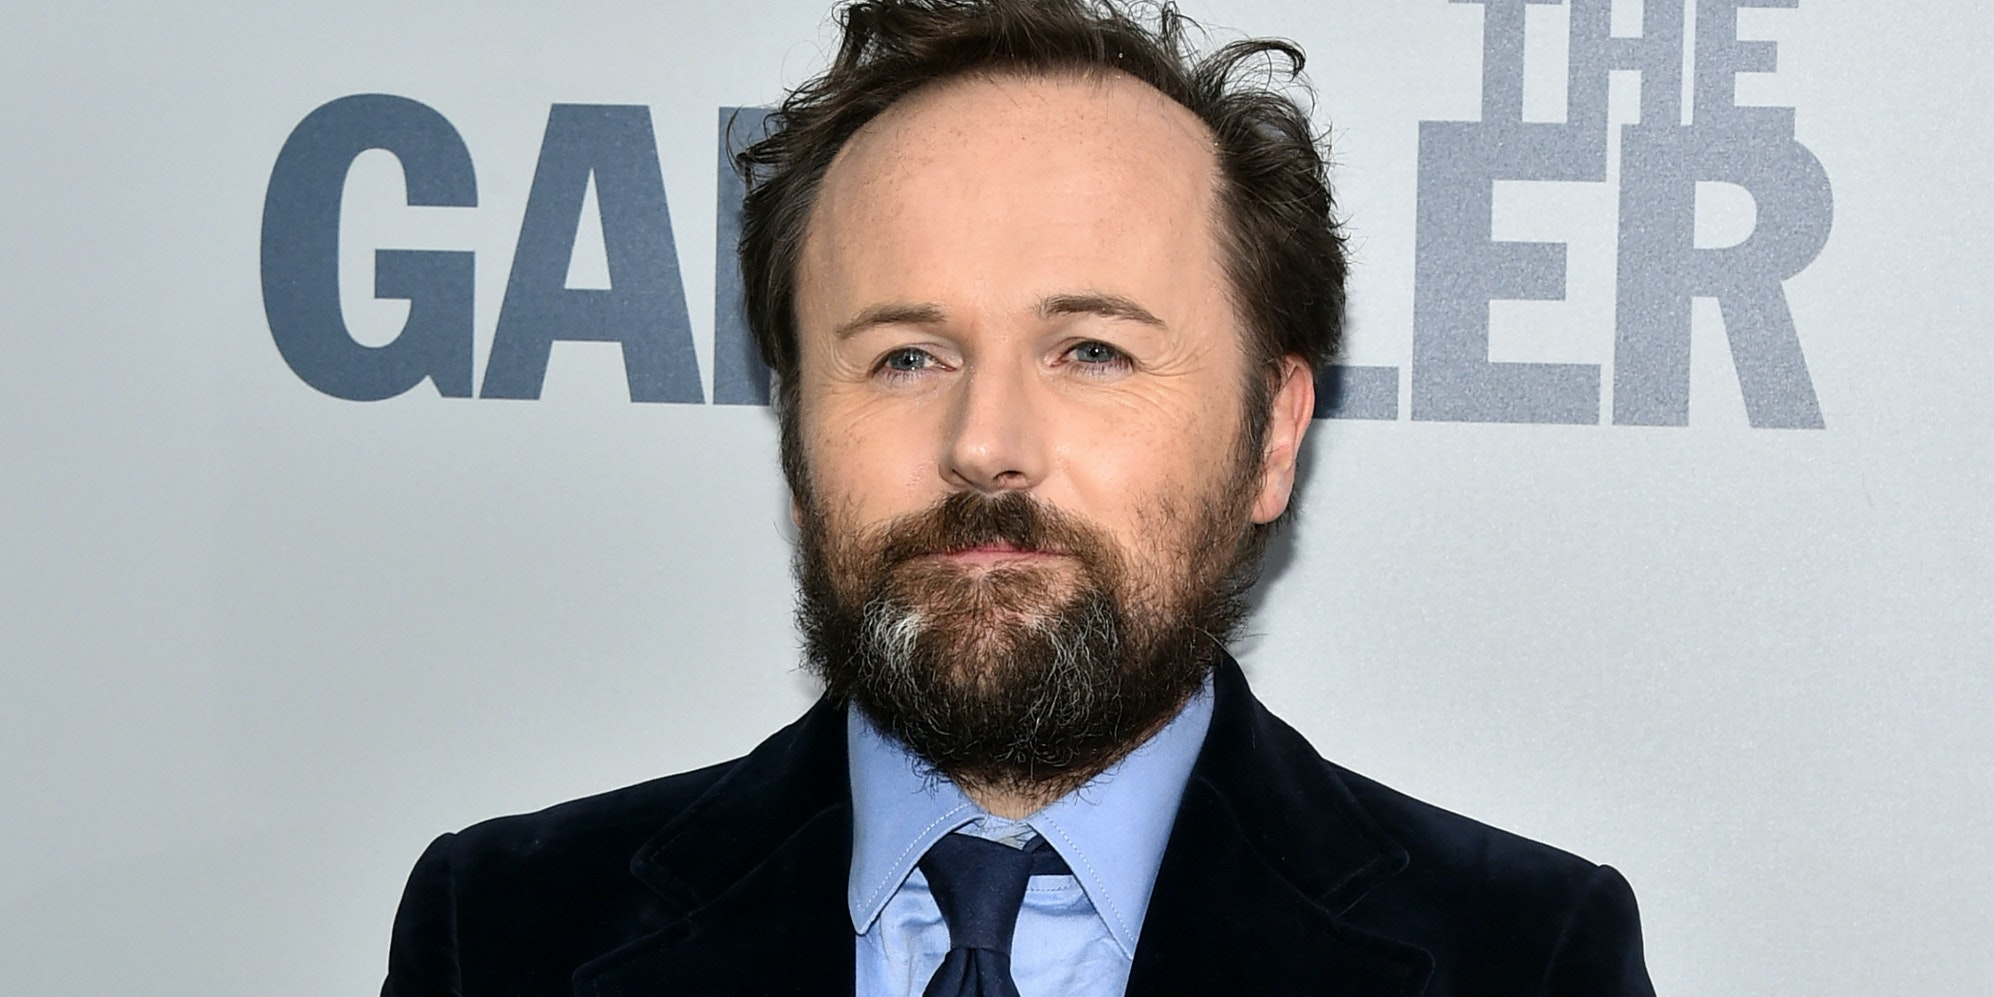 NEW YORK, NY - DECEMBER 10:  Director  Rupert Wyatt attends 'The Gambler' New York Premiere at AMC Lincoln Square Theater on December 10, 2014 in New York City.  (Photo by Theo Wargo/Getty Images)